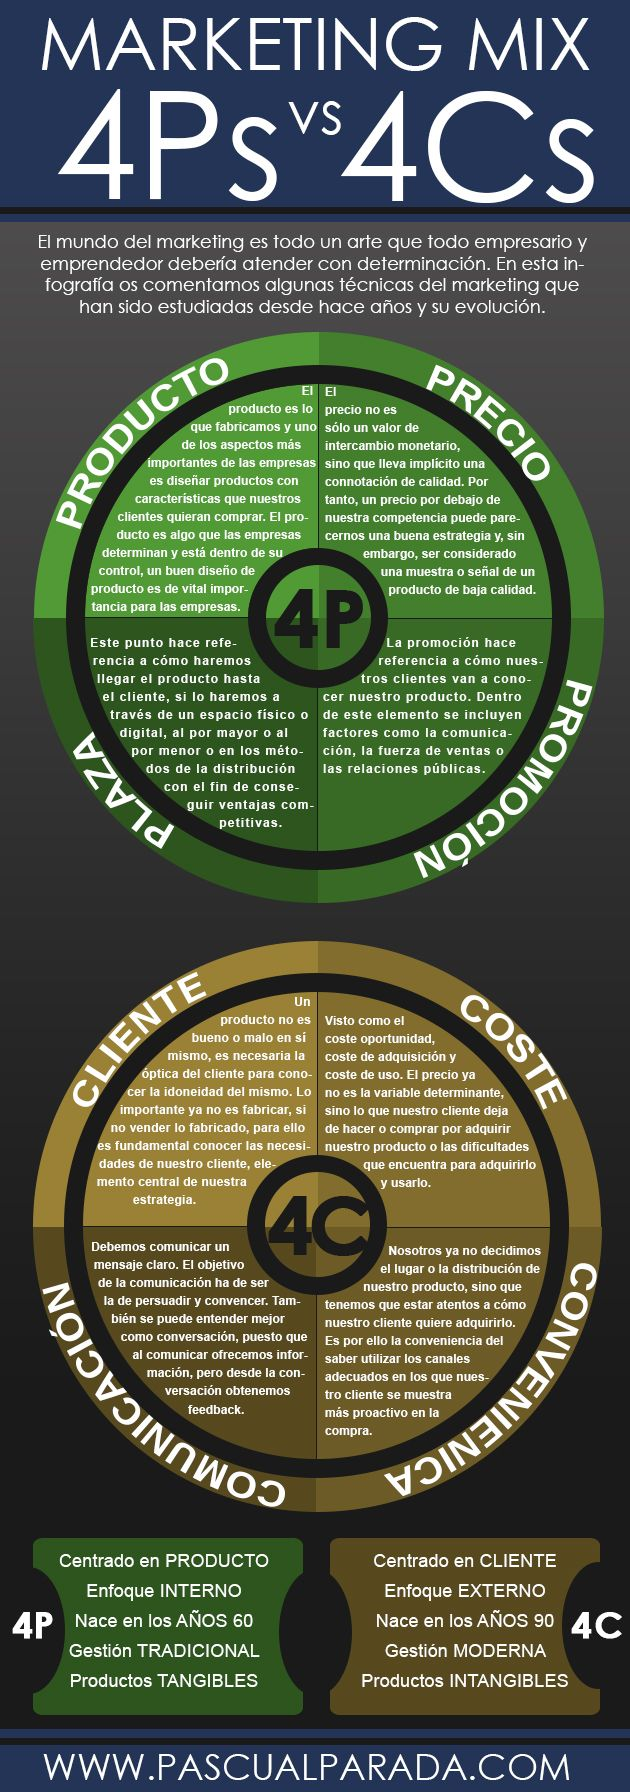 Marketing Mix: 4Ps vs 4Cs. Infografía en español